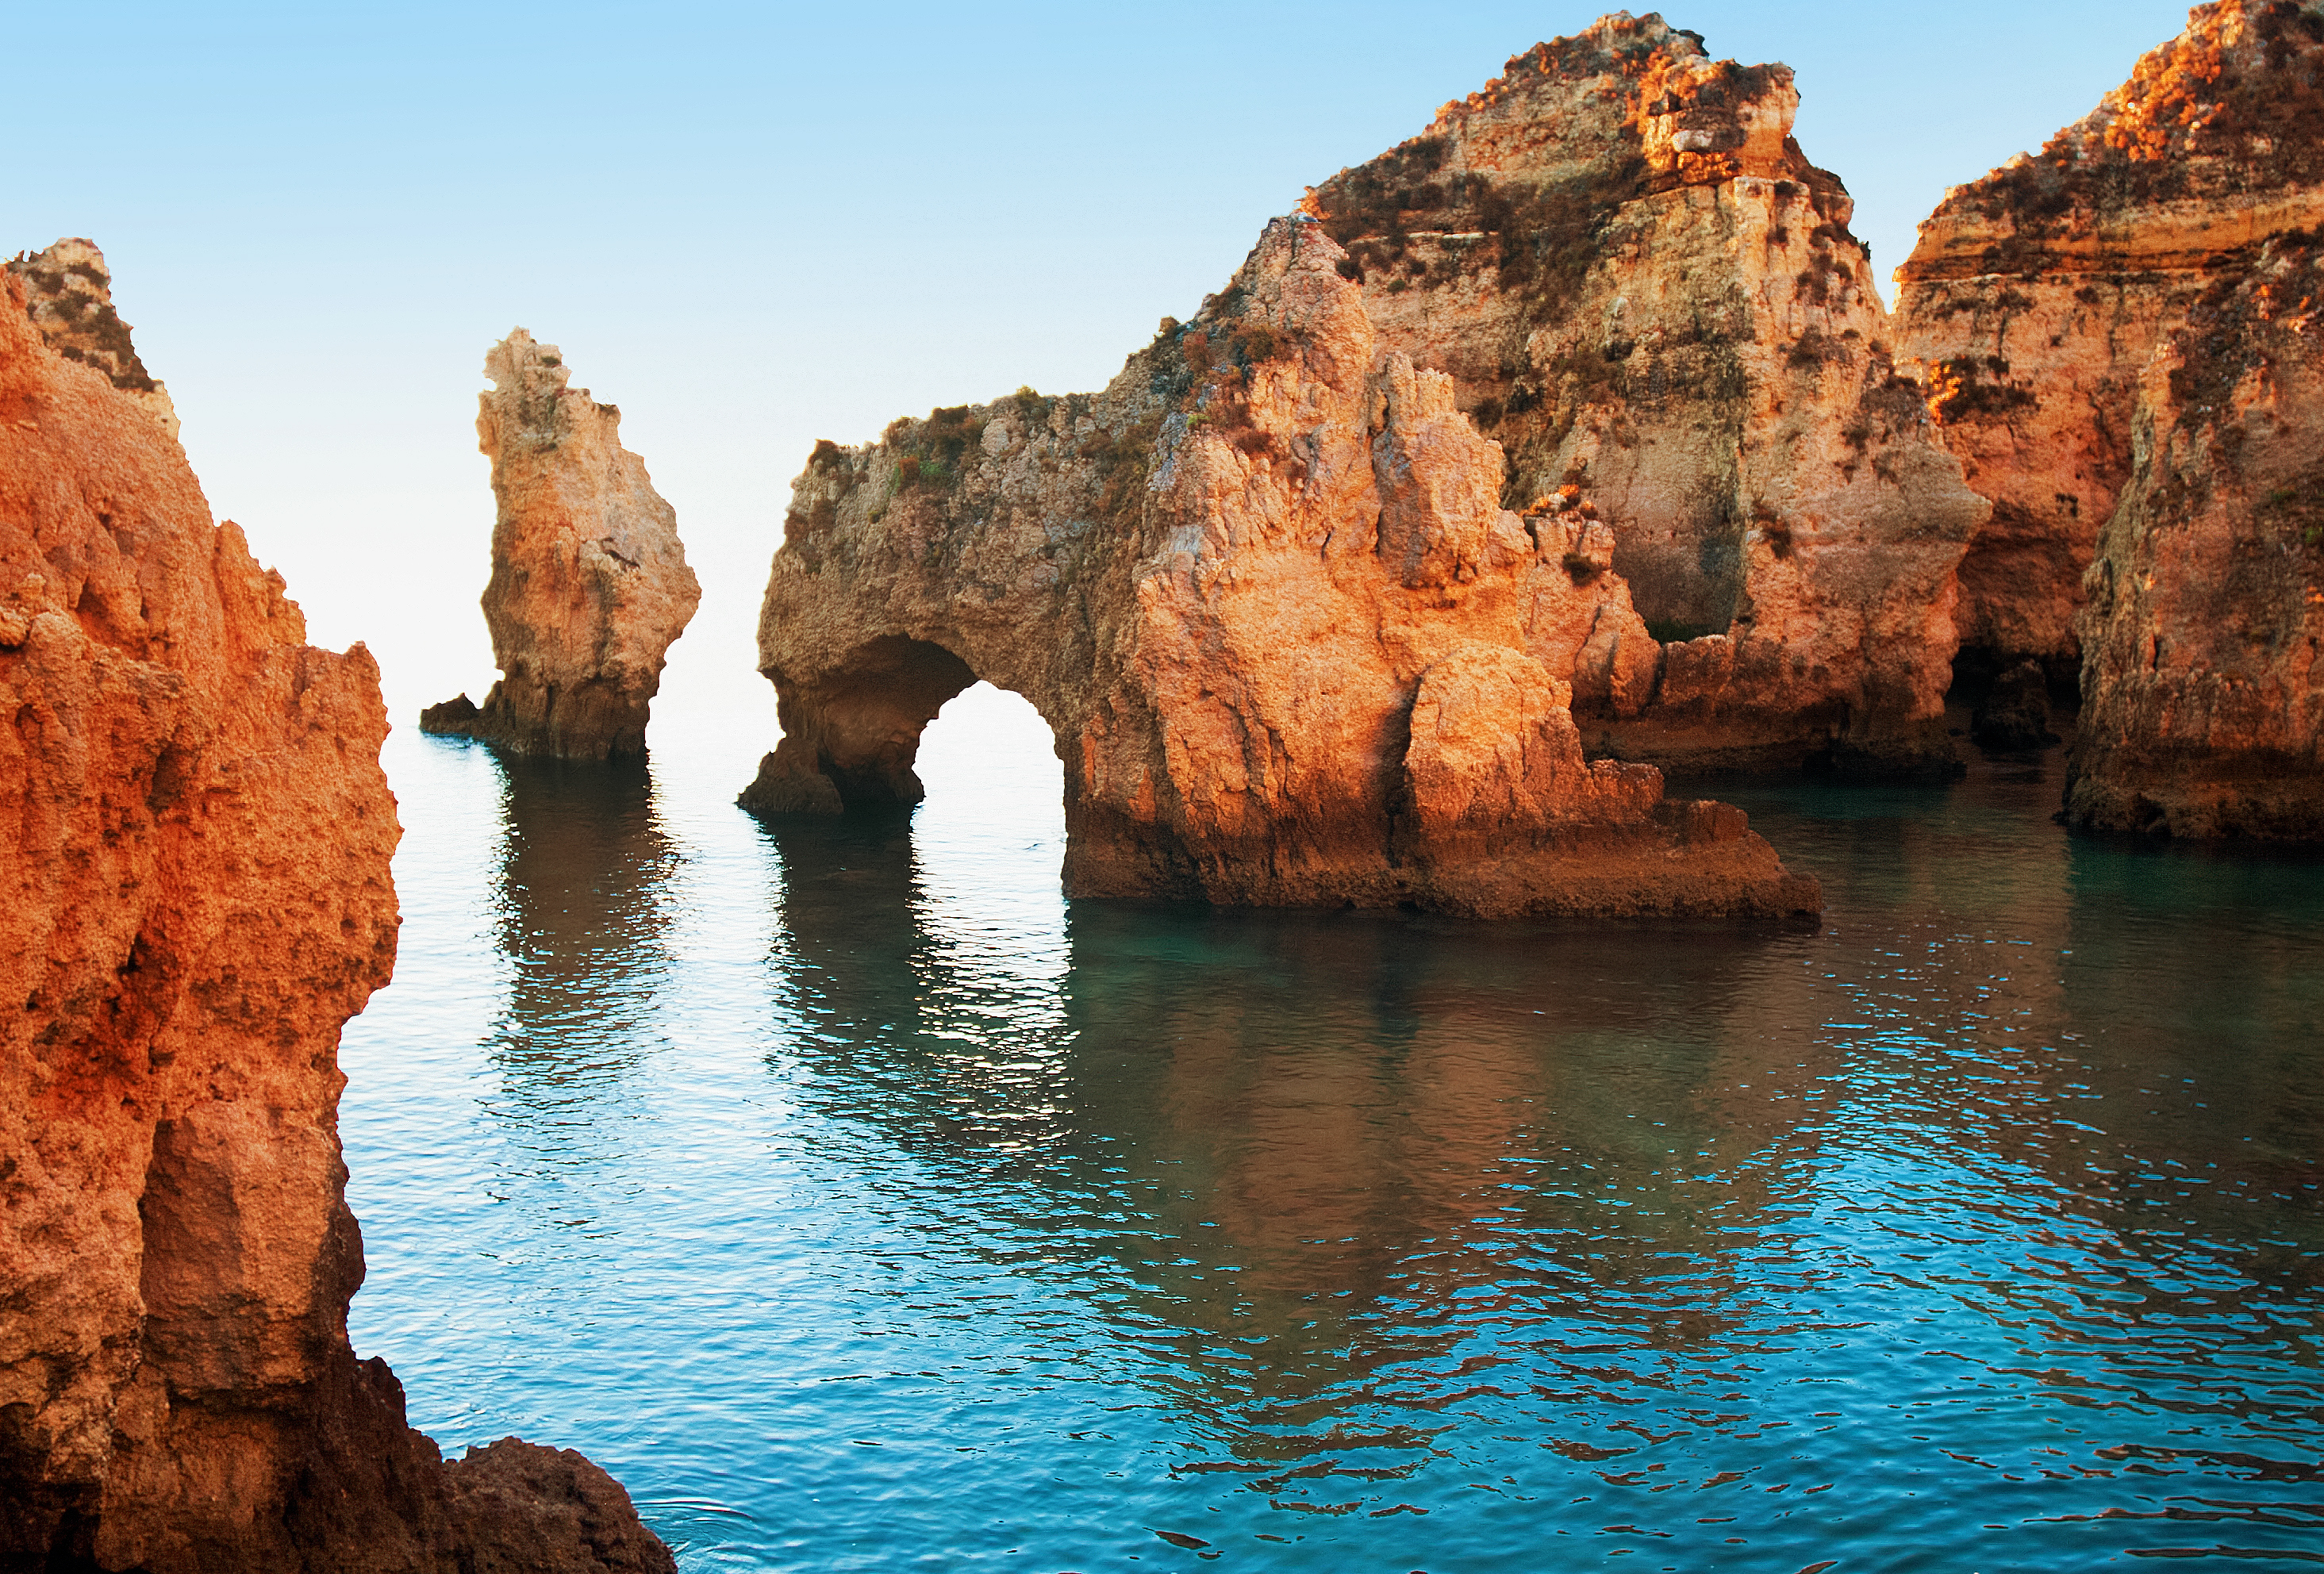 Dramatic coastal cliffs at Ponta da Piedade, Lagos, Portugal (mmeee/Thinkstock/PA)